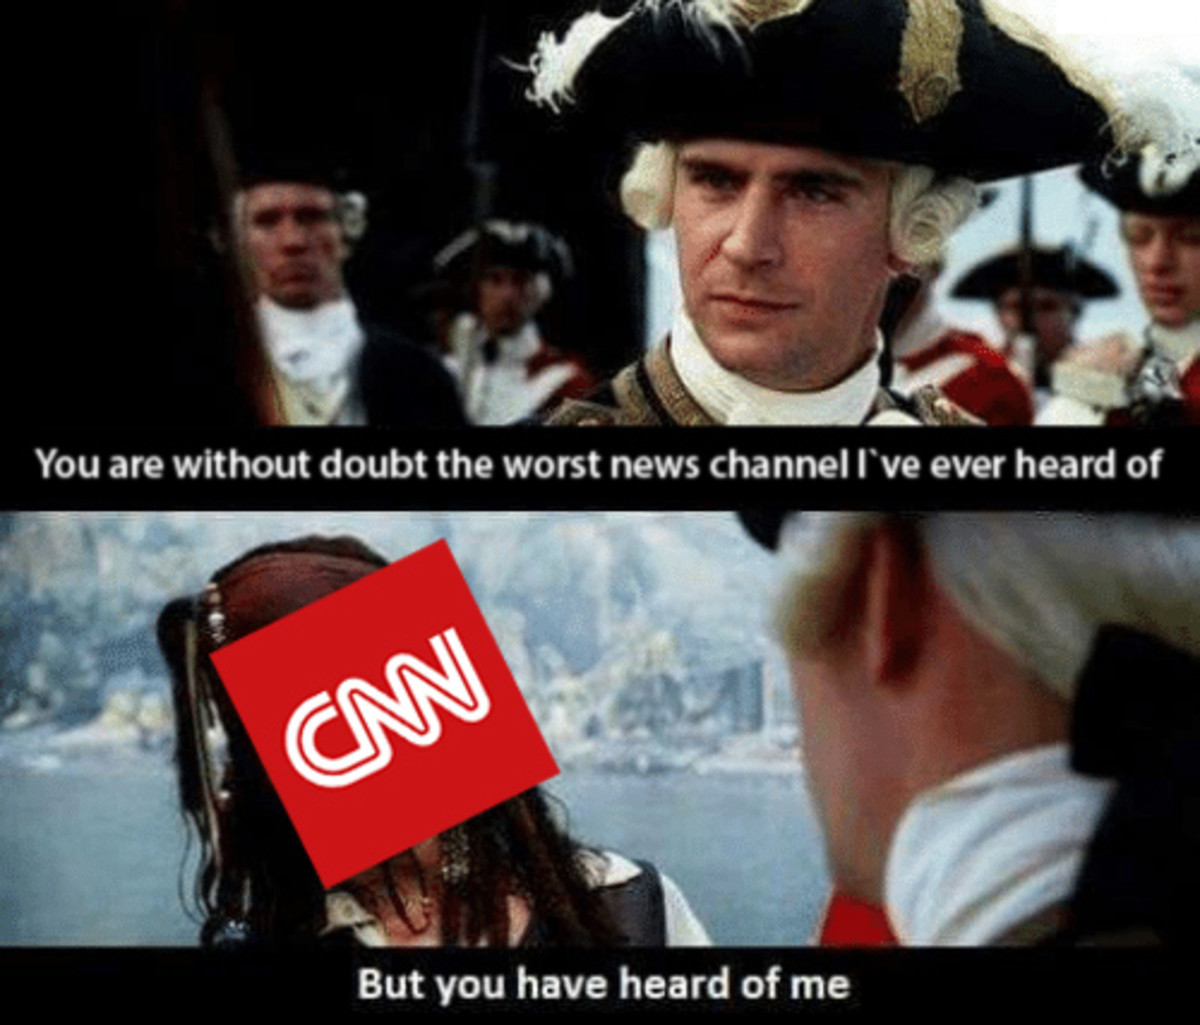 Every time CNN caught lying to the people. . But you have heard of me. CNN in a nutshell